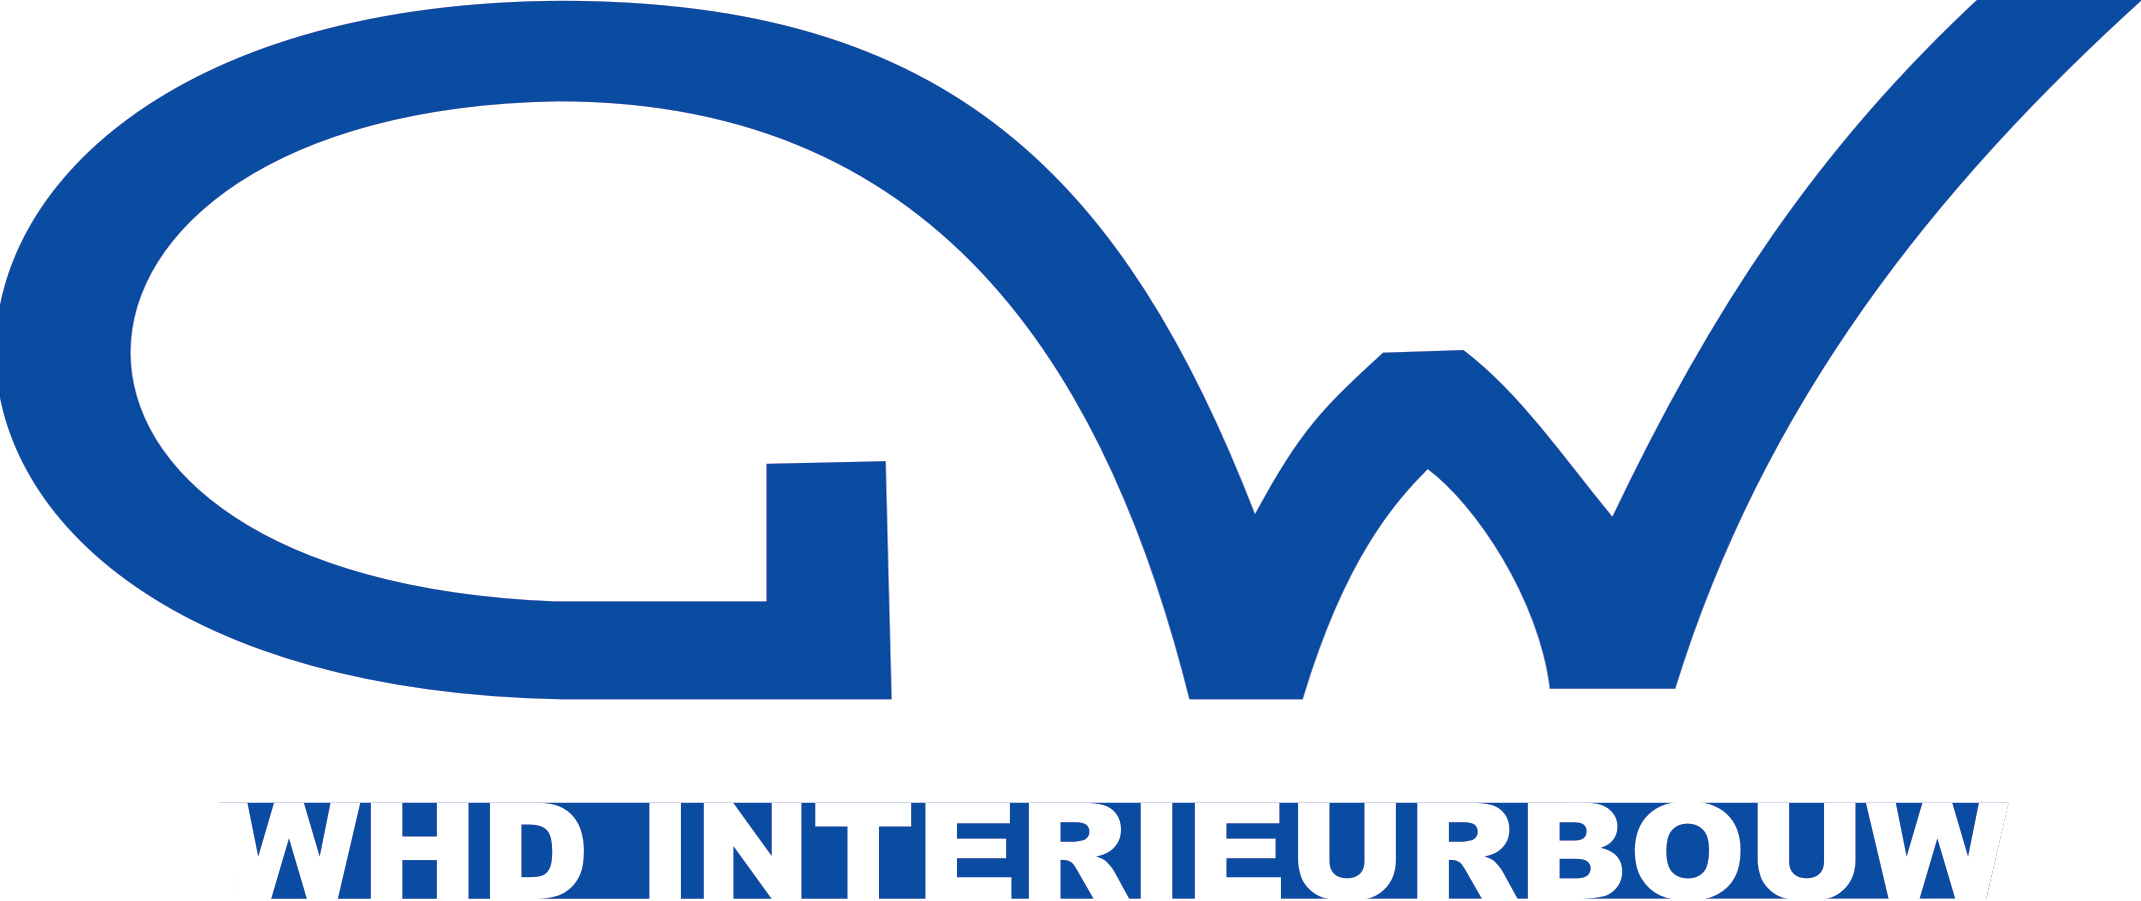 interieurbouw-amsterdam-whd-interieurbouw